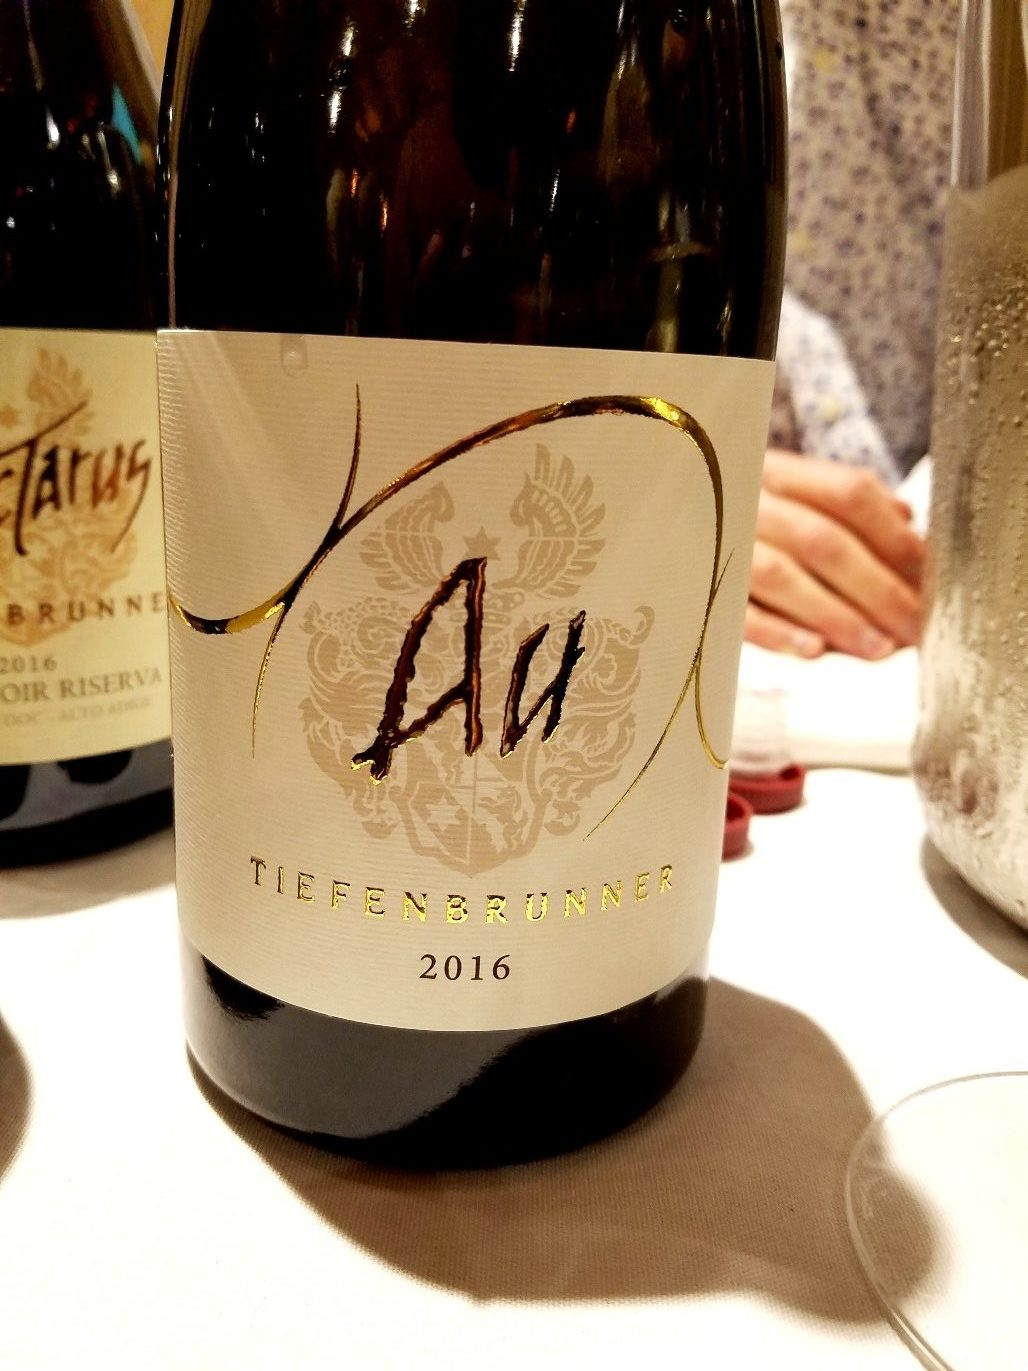 Tiefenbrunner Chardonnay 2016, James Suckling Great Wines of Italy New York 2020, Wine Casual